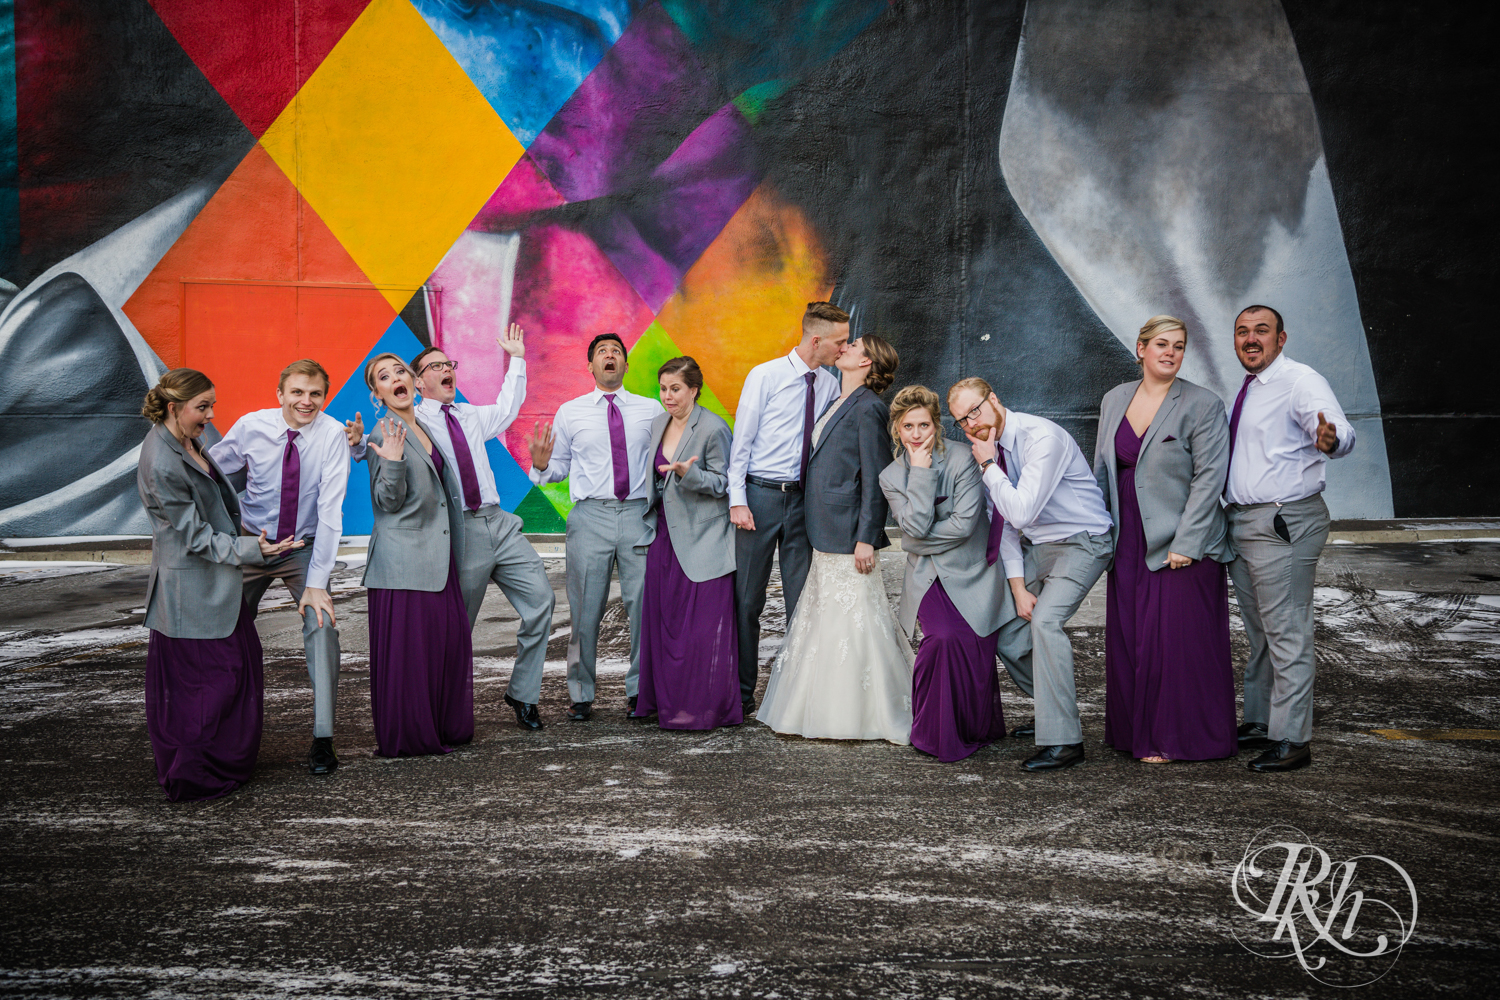 Jillian & Jared - Minnesota Wedding Photography - Lumber Exchange Event Center - RKH Images - Blog (33 of 87).jpg